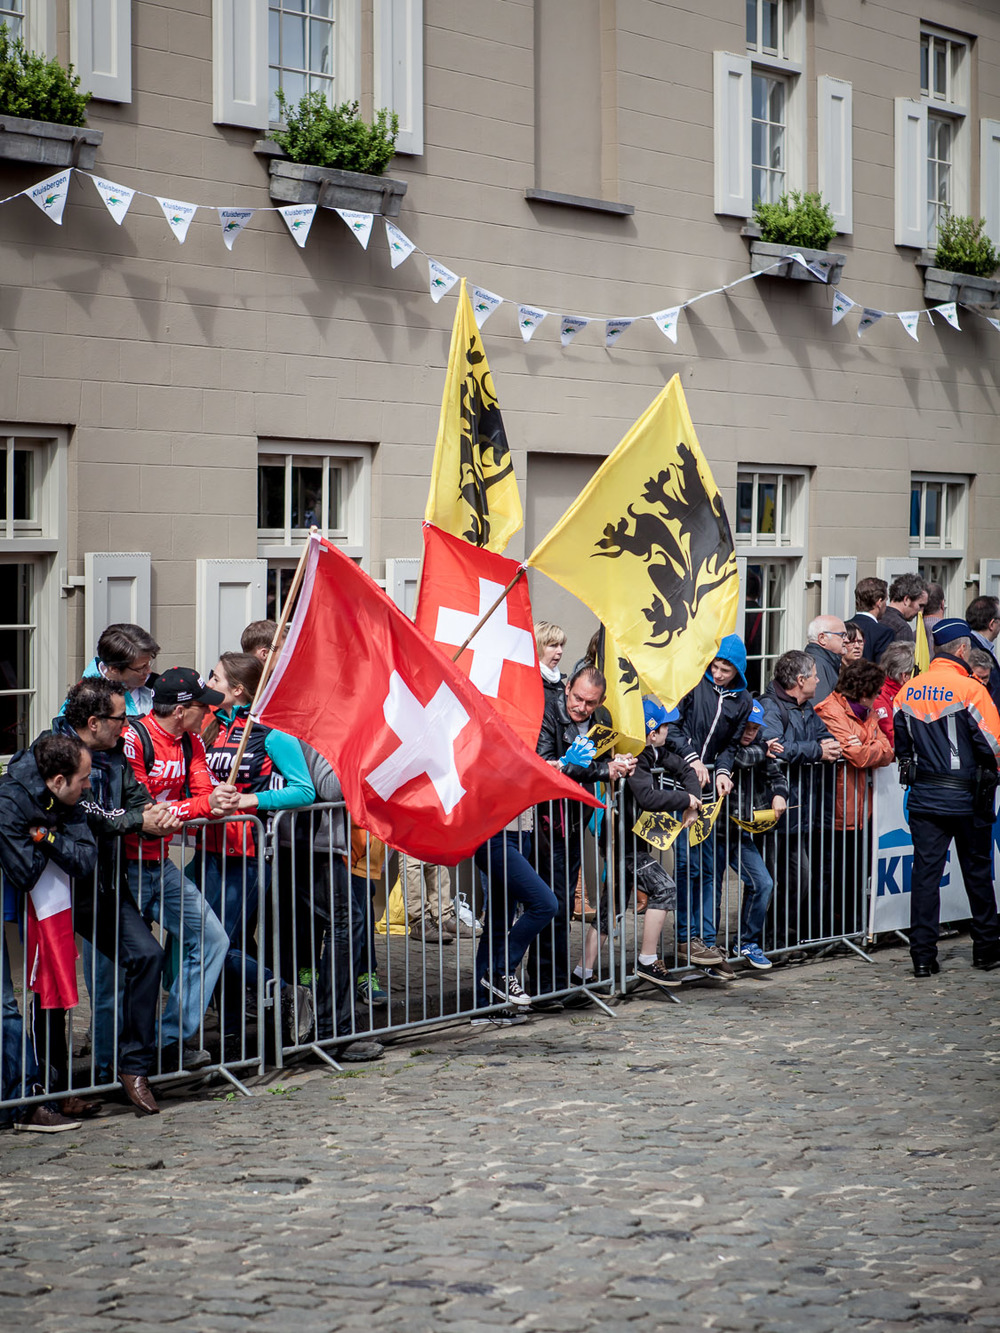 Switzerland vs Flanders, Cancellara vs Boonen. The two cyclists responsible for the majority of the flags seen on the roadside.